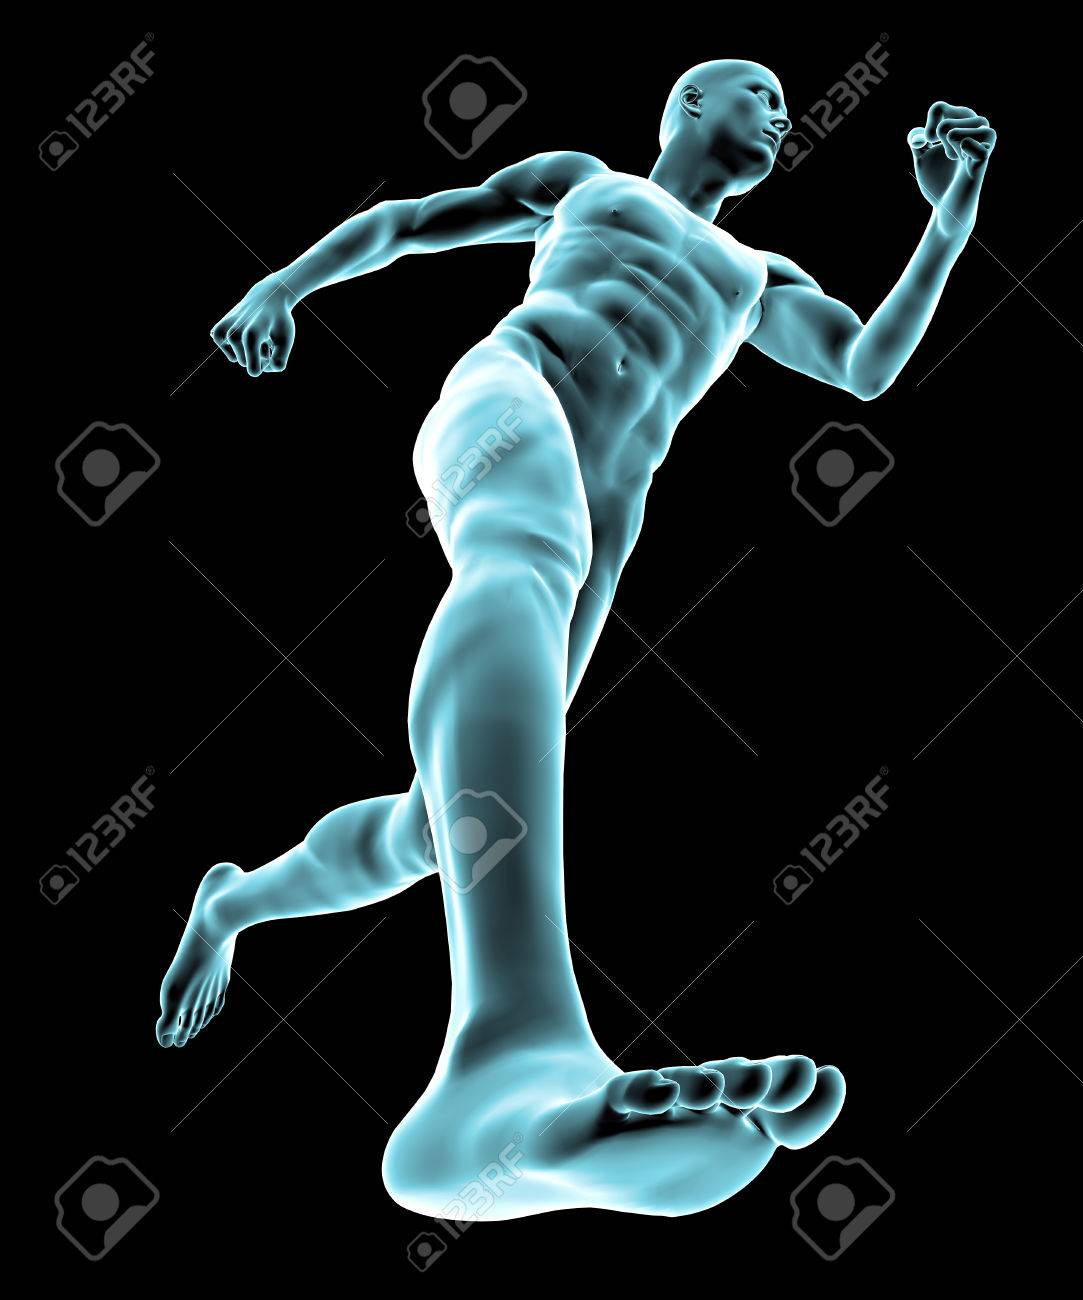 X Ray Of Human Body And Skeleton Feet Stock Photo Picture And